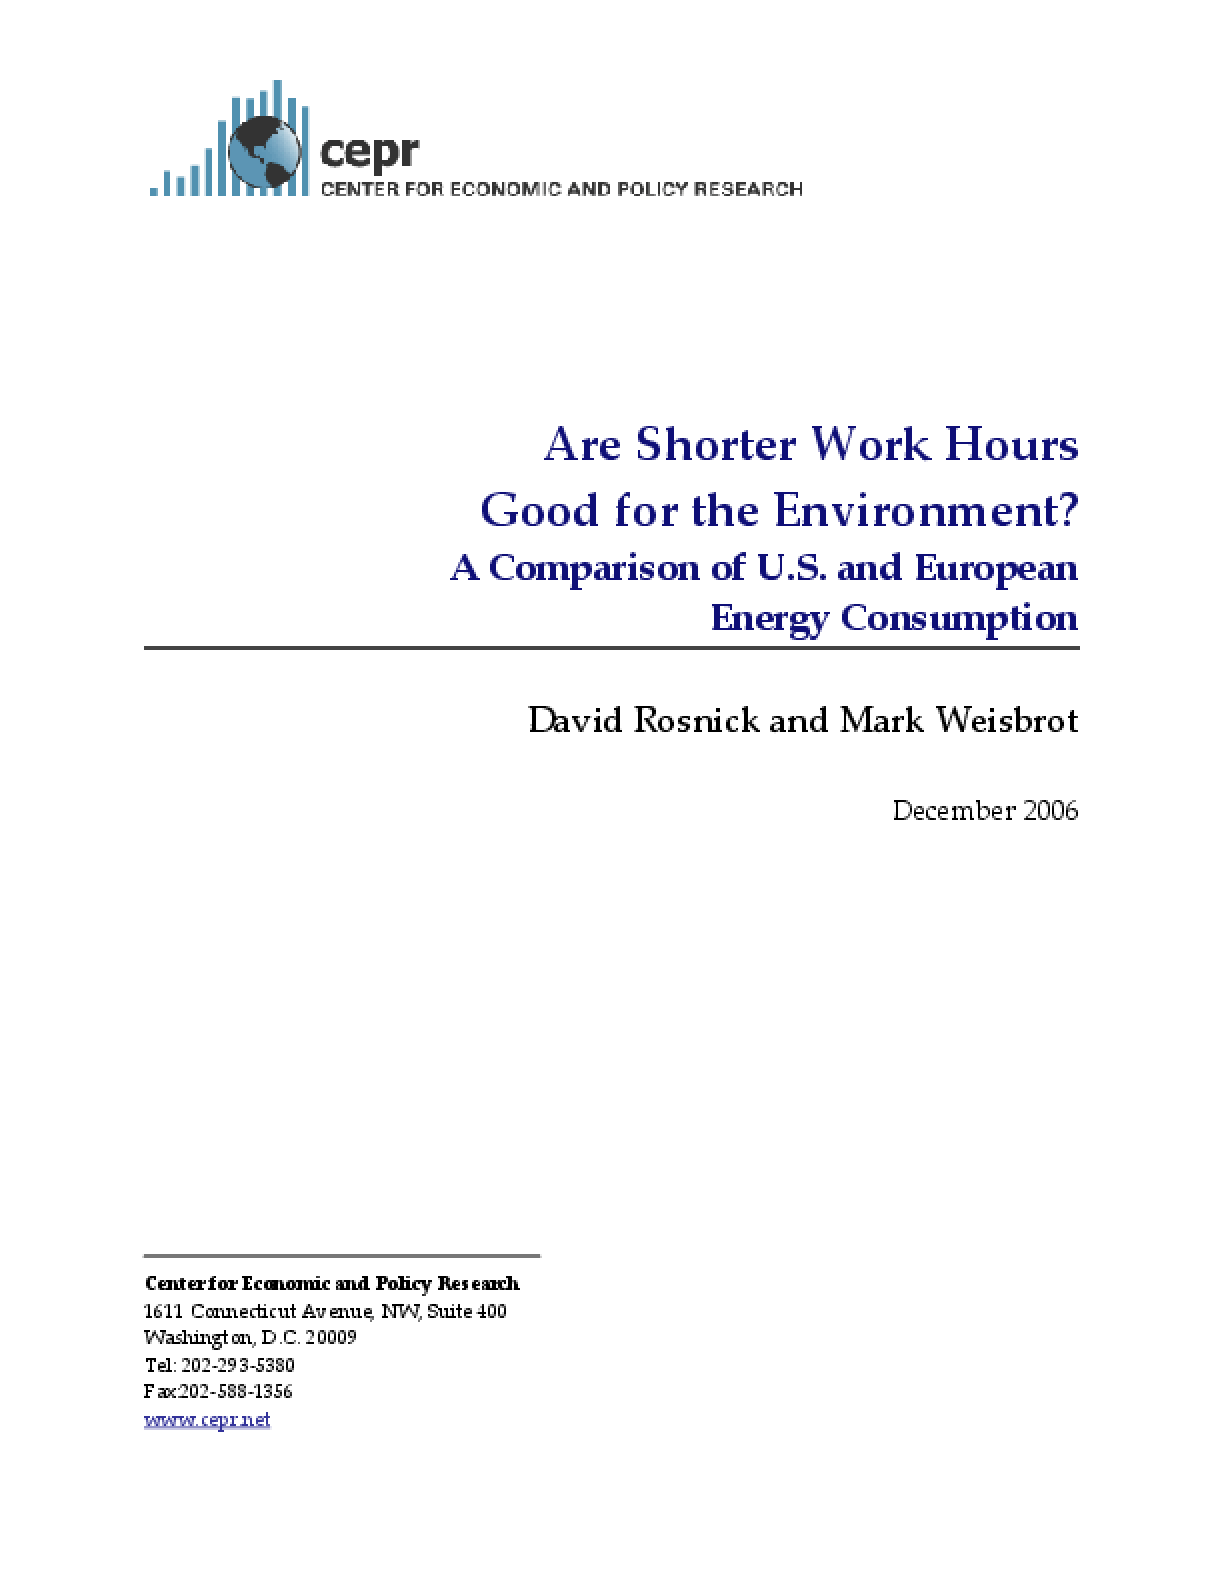 Are Shorter Work Hours Good for the Environment? A Comparison of U.S. and European Energy Consumption